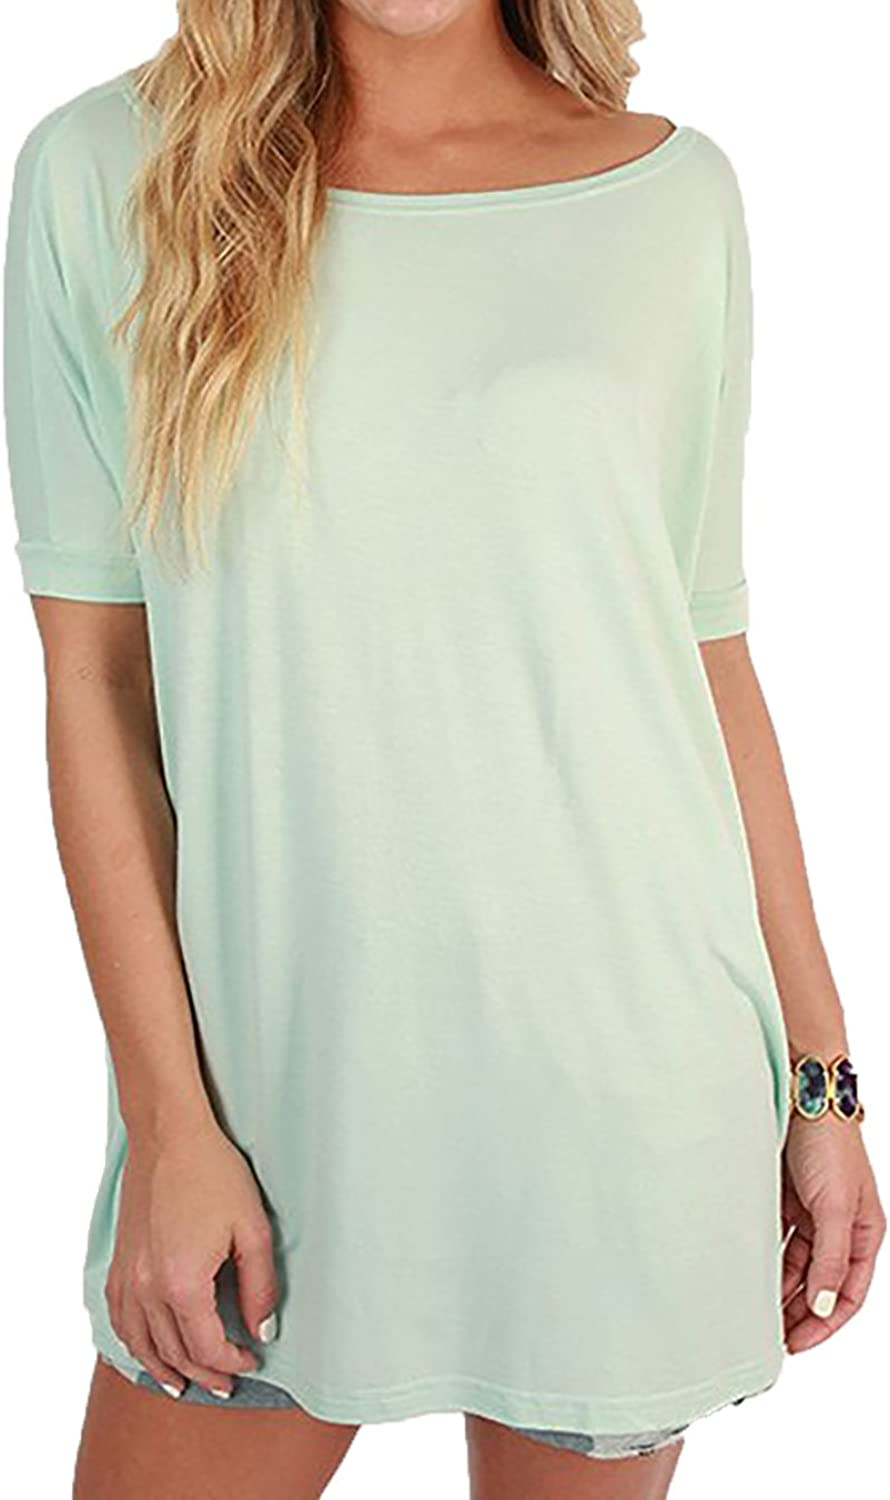 Piko Women's Famous 1988 Short Sleeve Bamboo Top Loose Fit New Mint, S